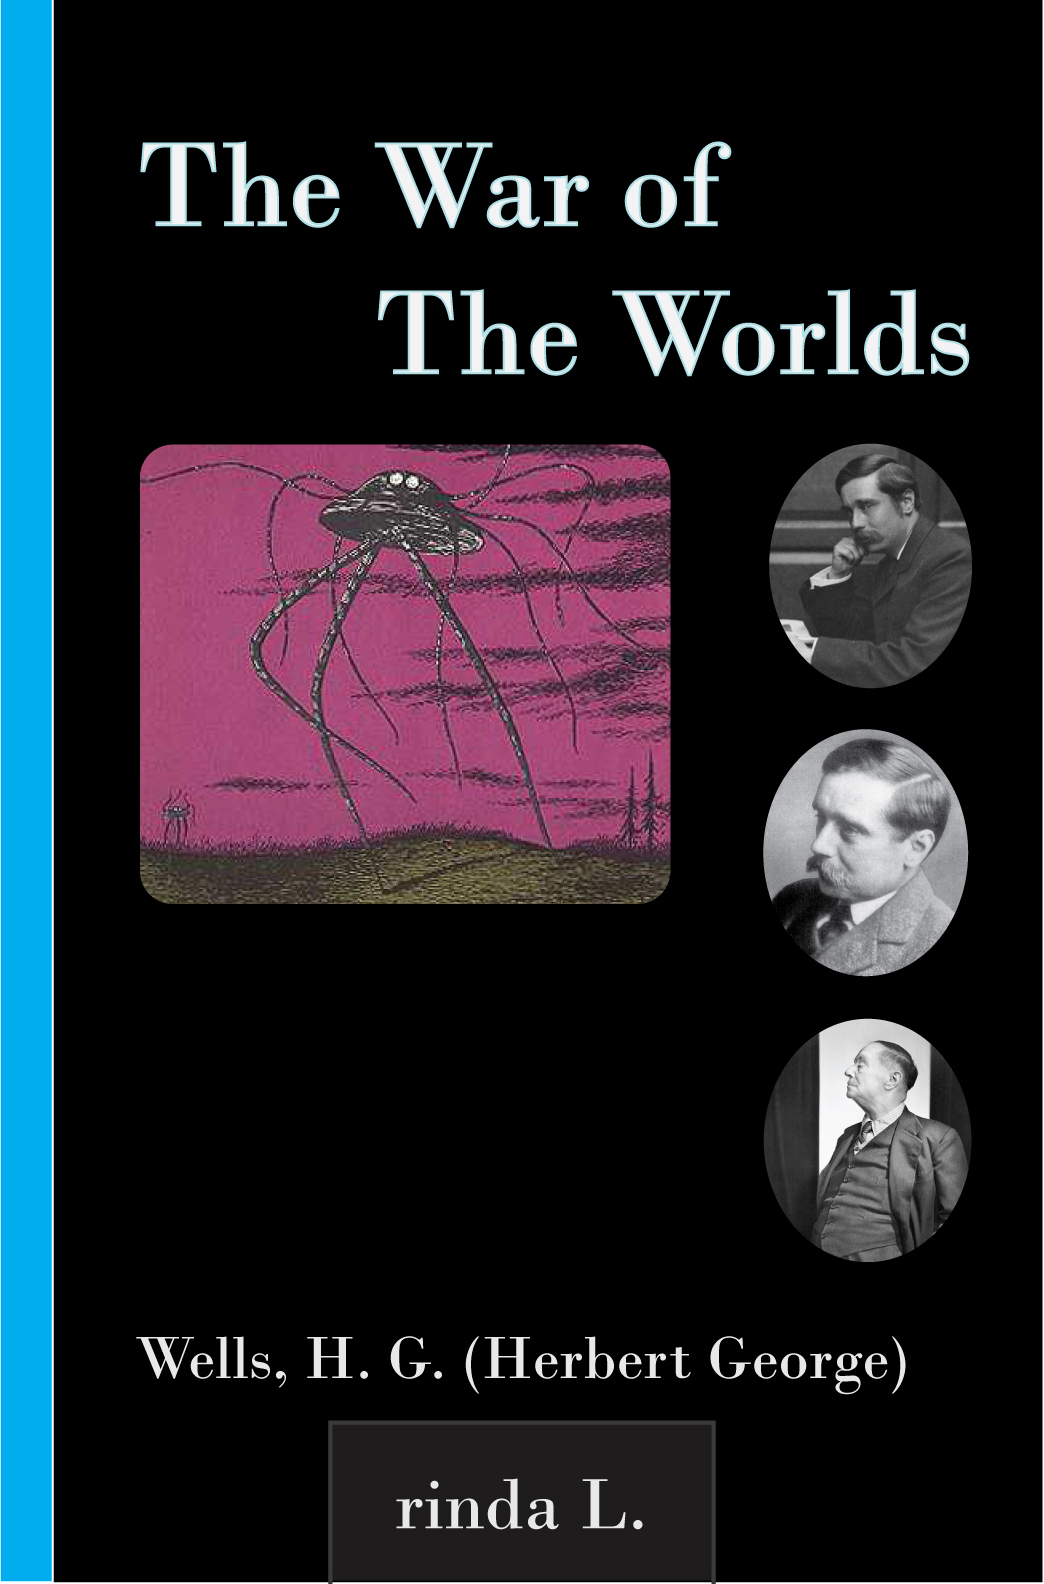 The War of The Worlds By: Wells H. G. (Herbert George)